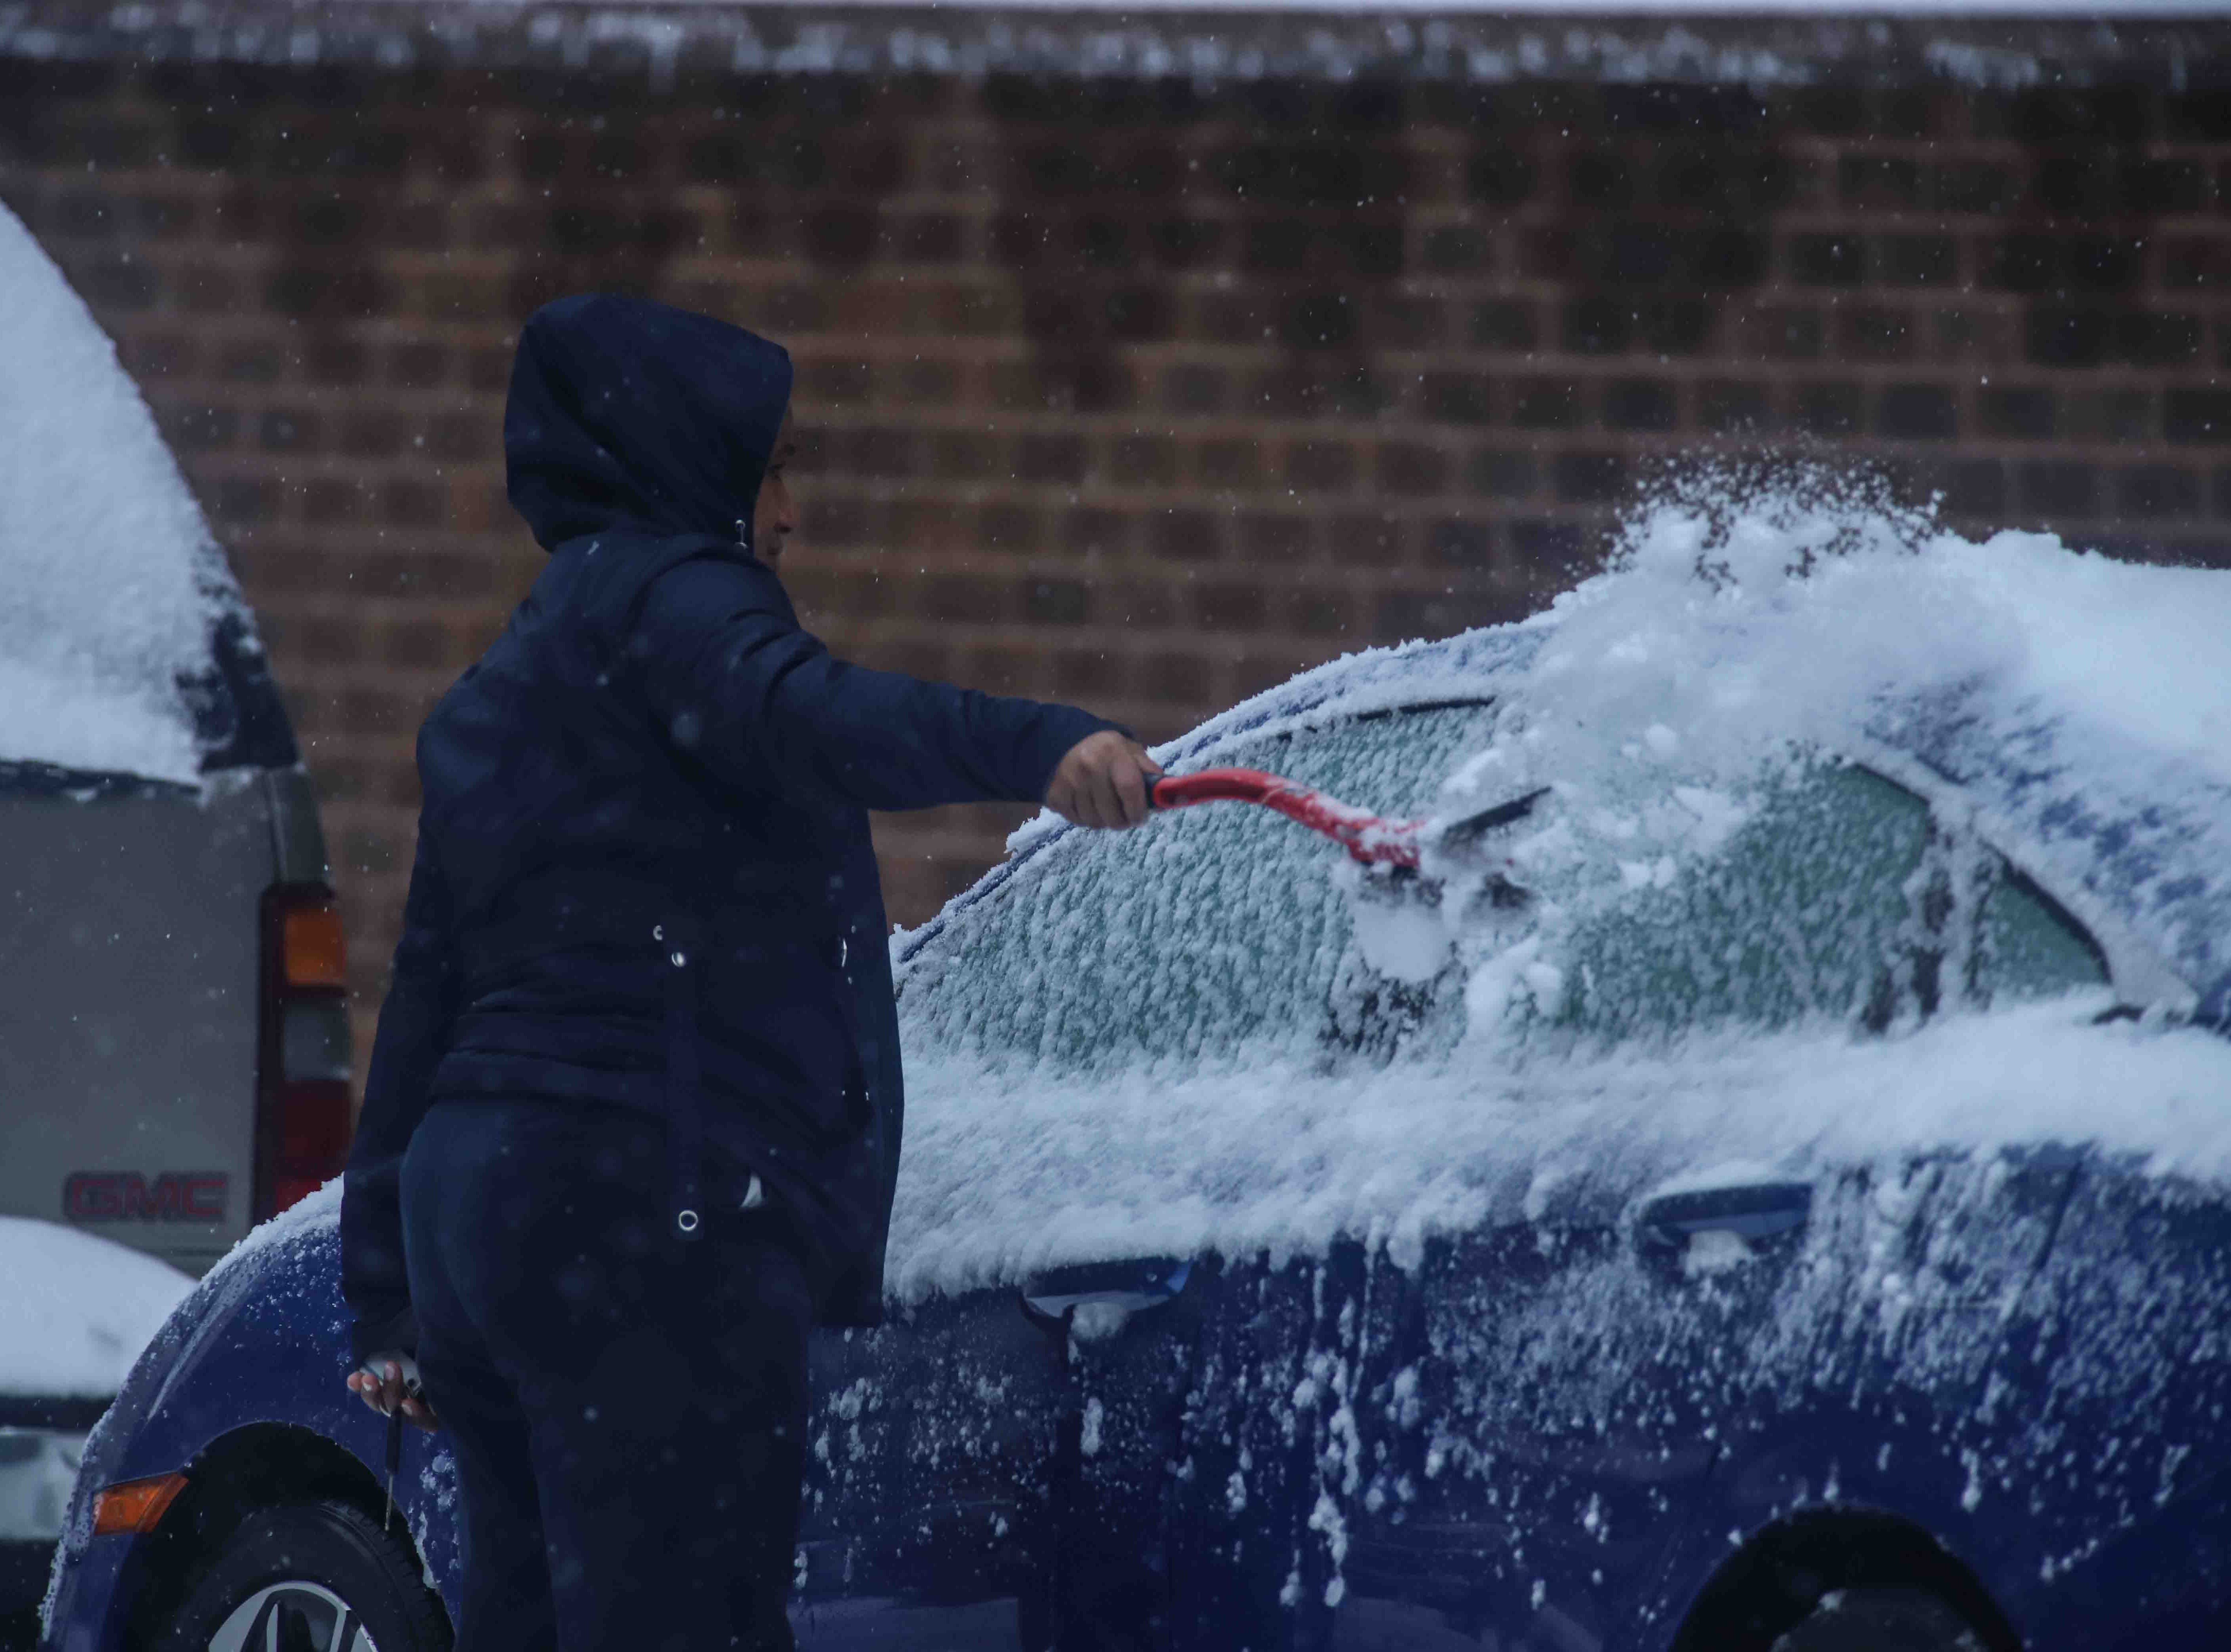 A pedestrian removes snow from her car on Thursday, Nov. 15, 2018, in Wilmington.